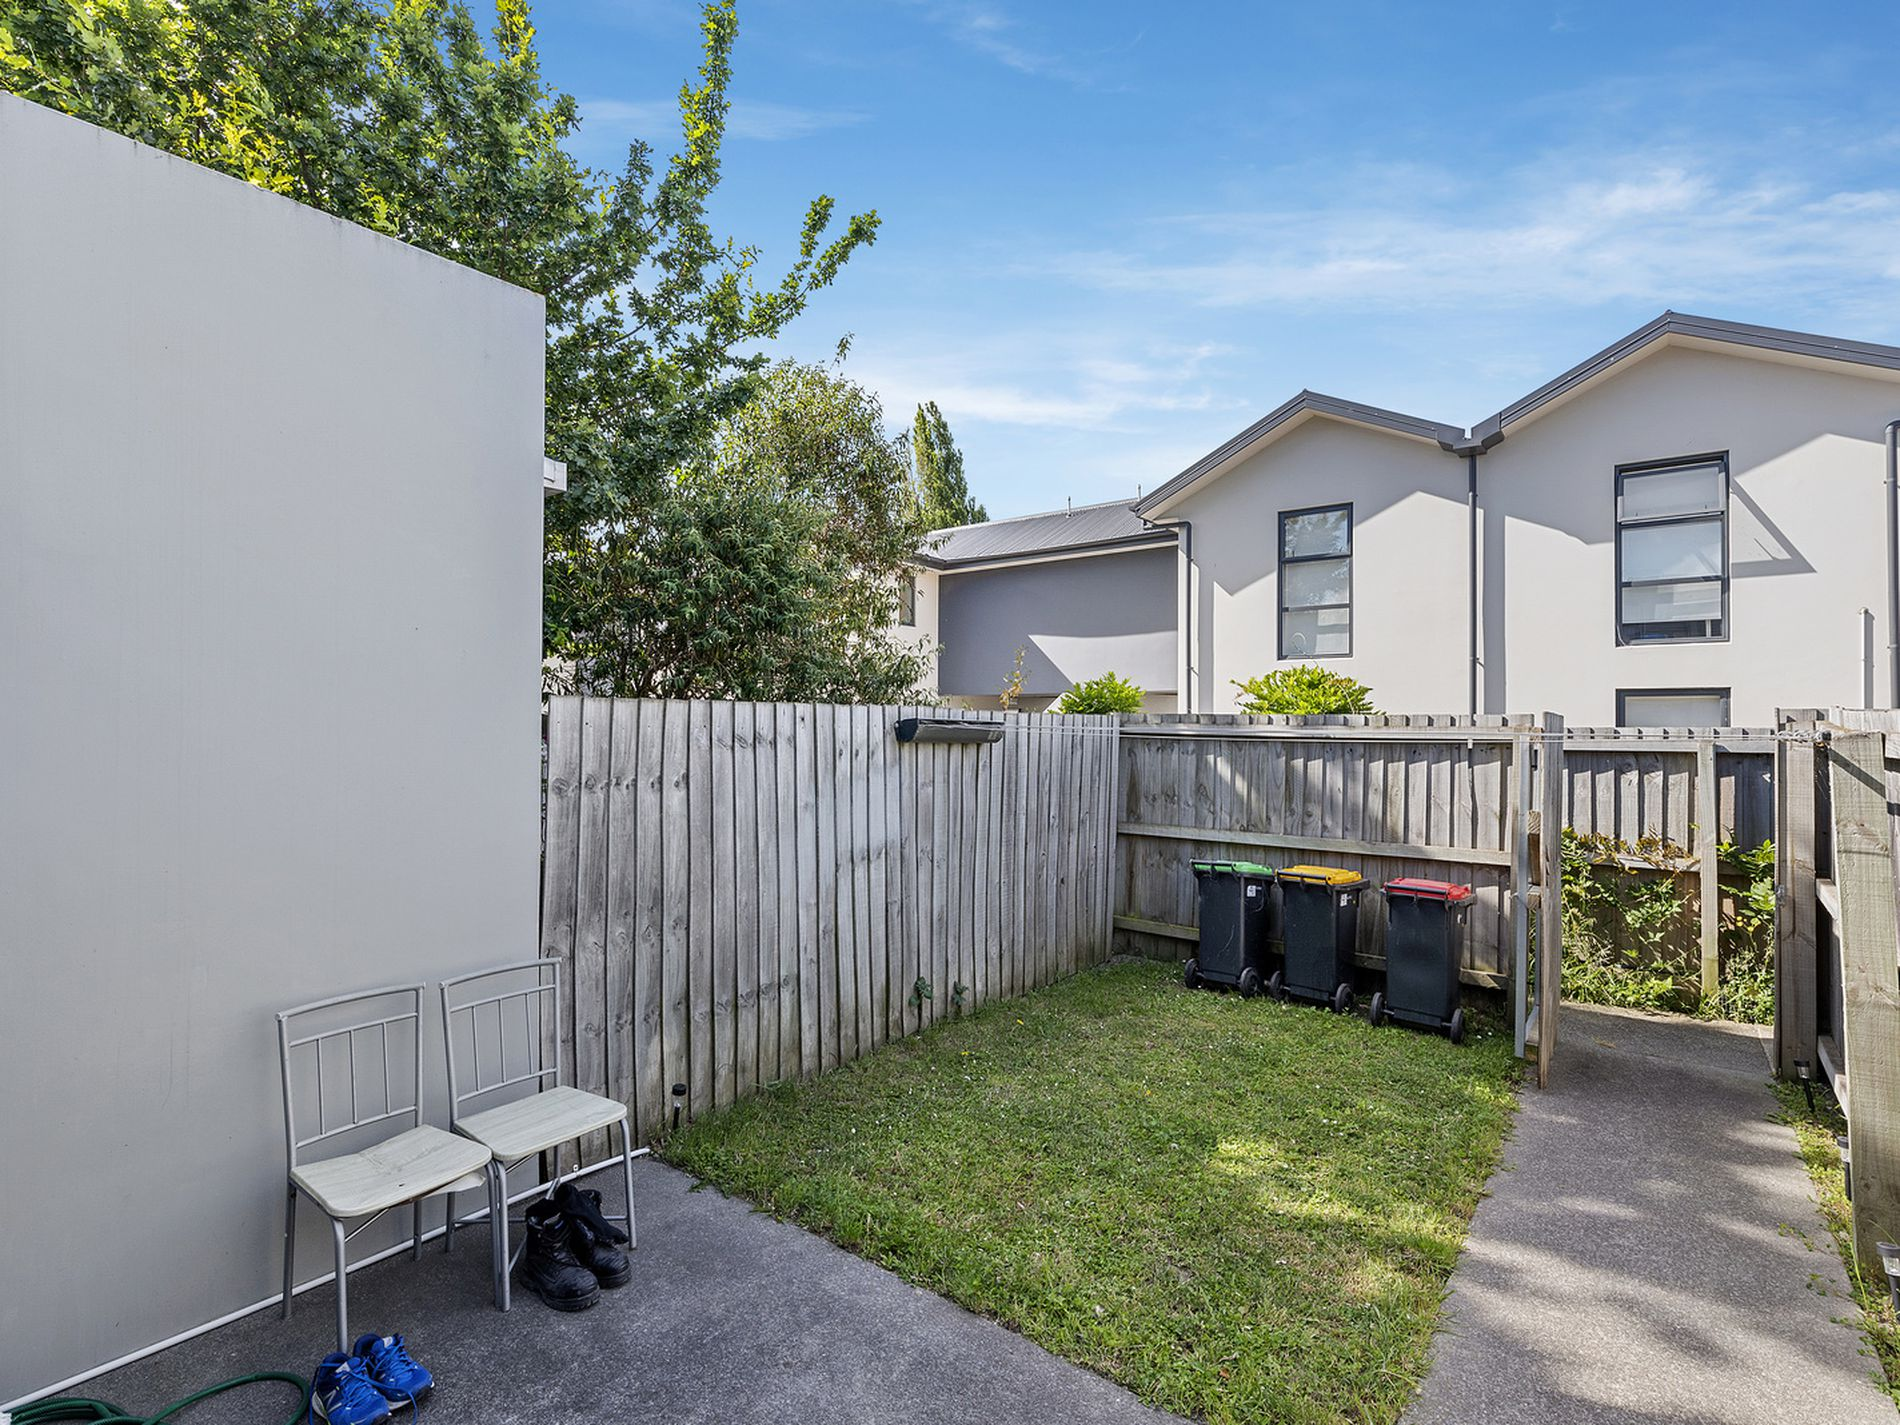 1-6 / 77 Bordesley Street, Phillipstown